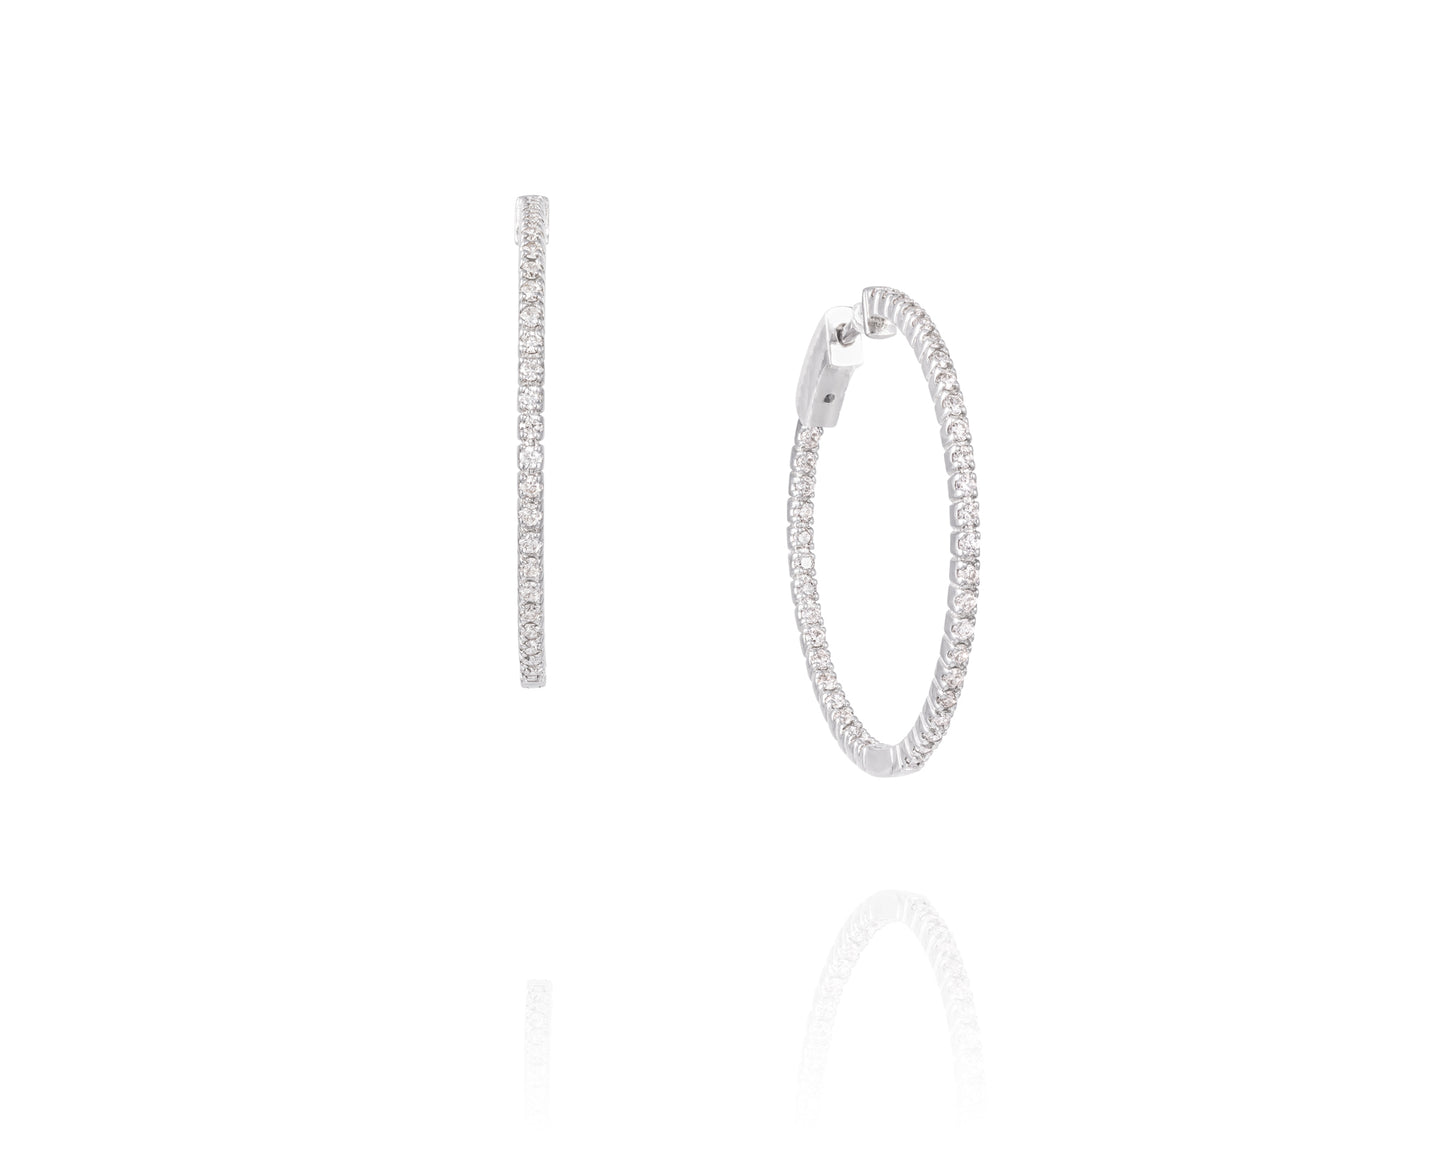 .8ct Diamond Hoop Earrings on 14kt White Gold